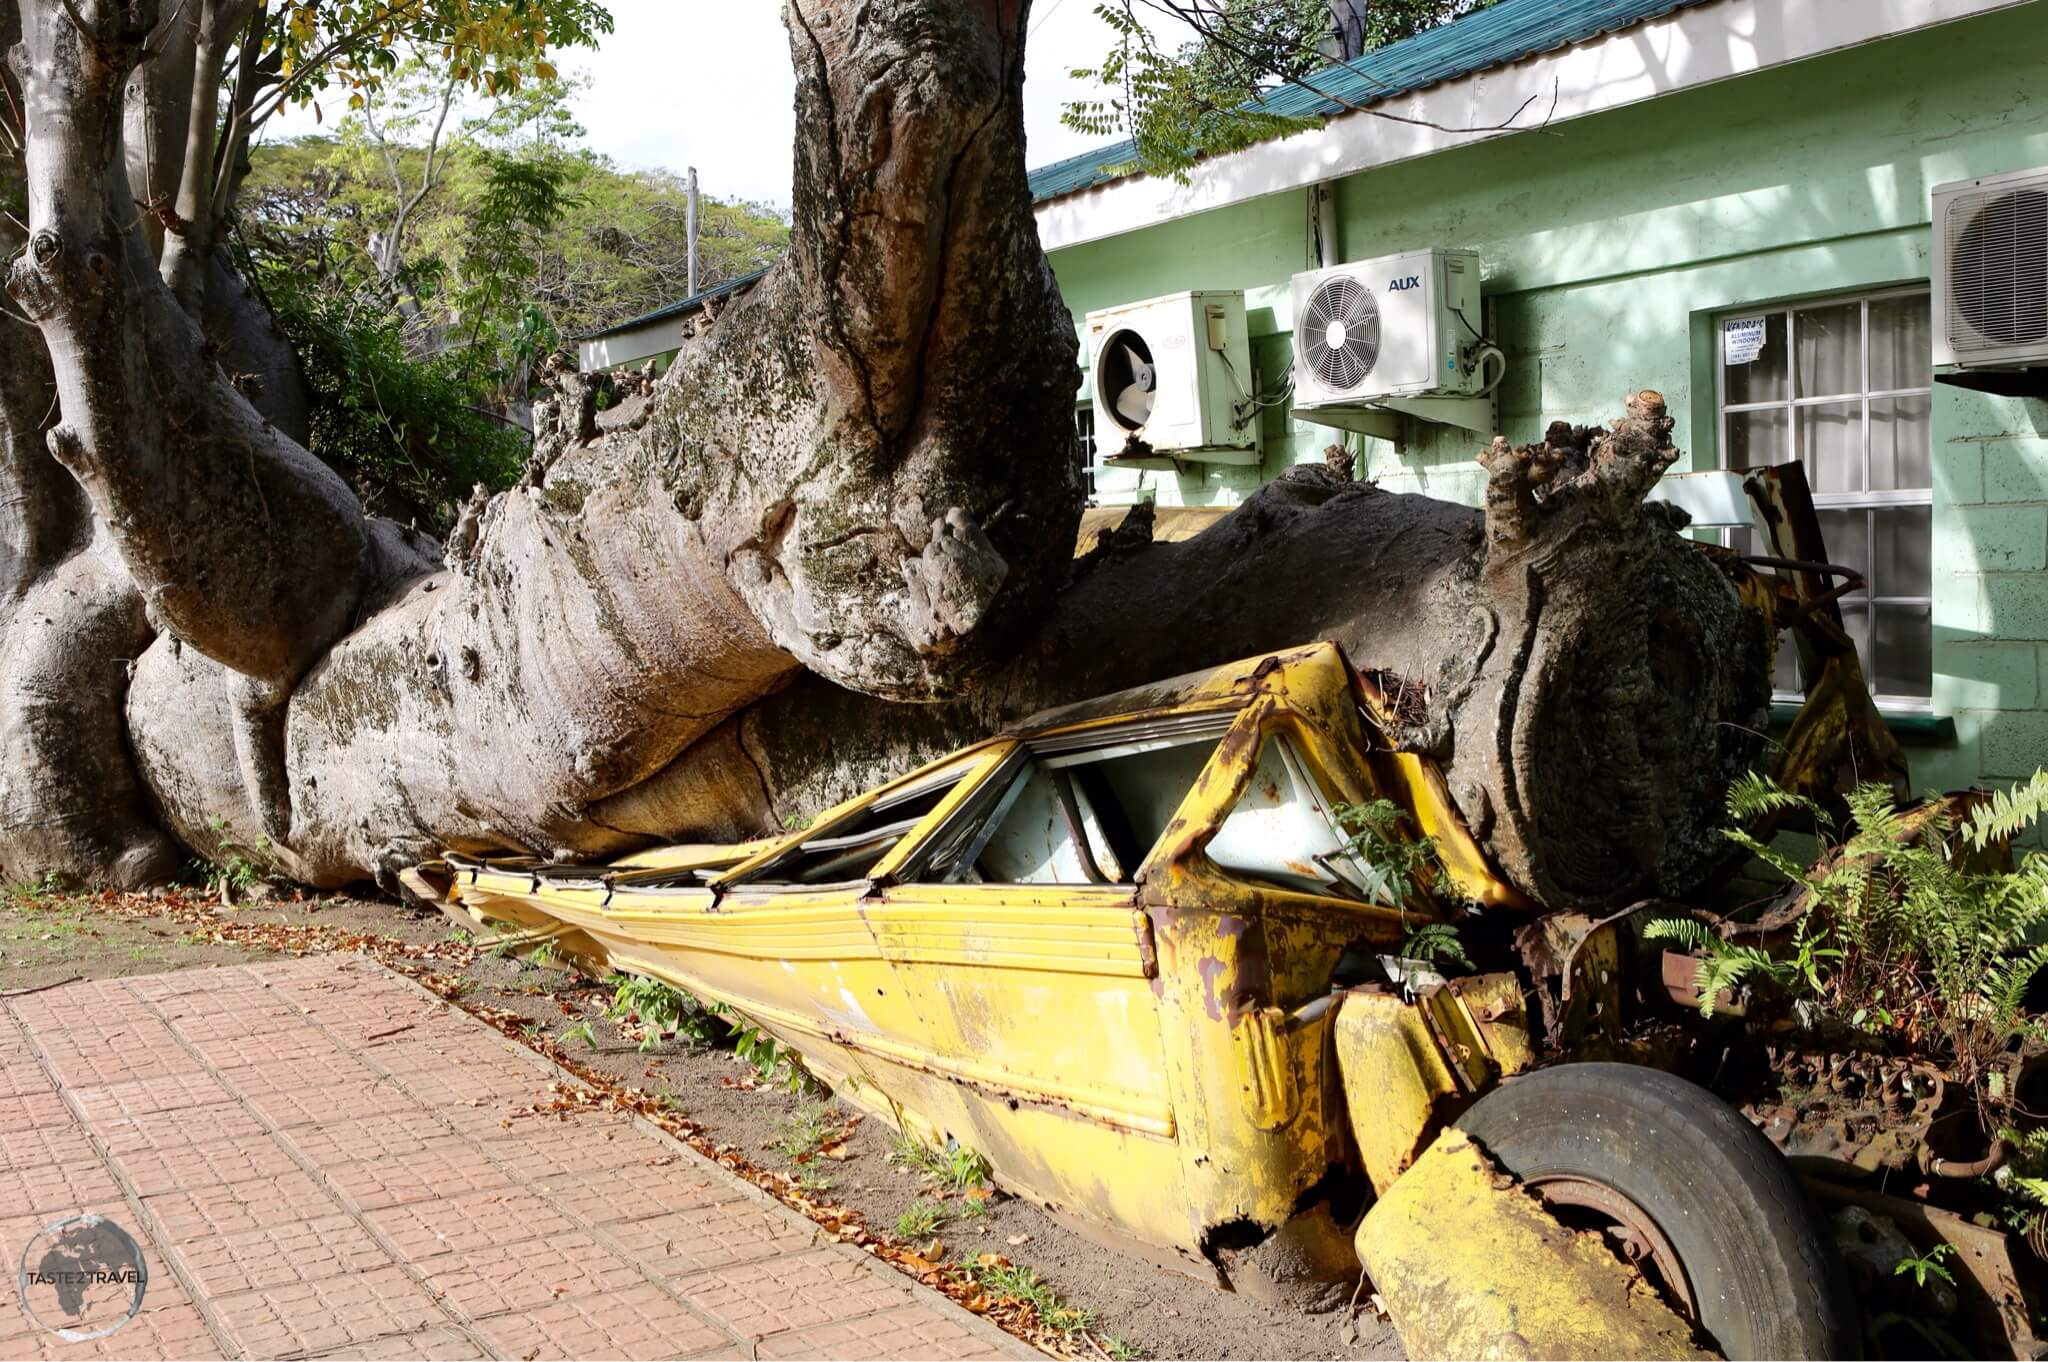 An unusual site in the Botanical gardens – an empty school bus crushed by an African baobab tree during hurricane David in 1979.